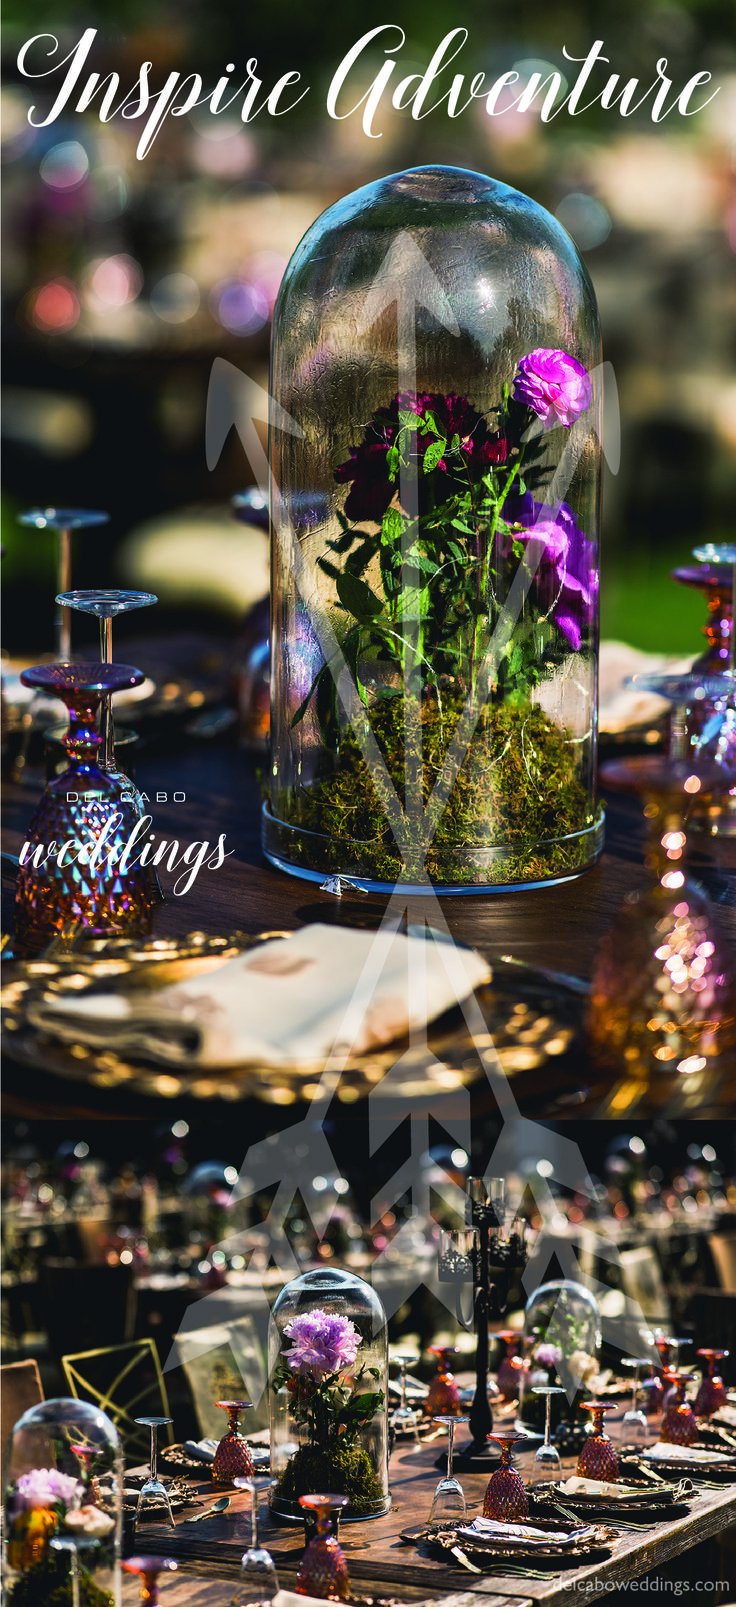 Make your vision a reality! Have your own theme wedding! Click on the photo and visit our website!